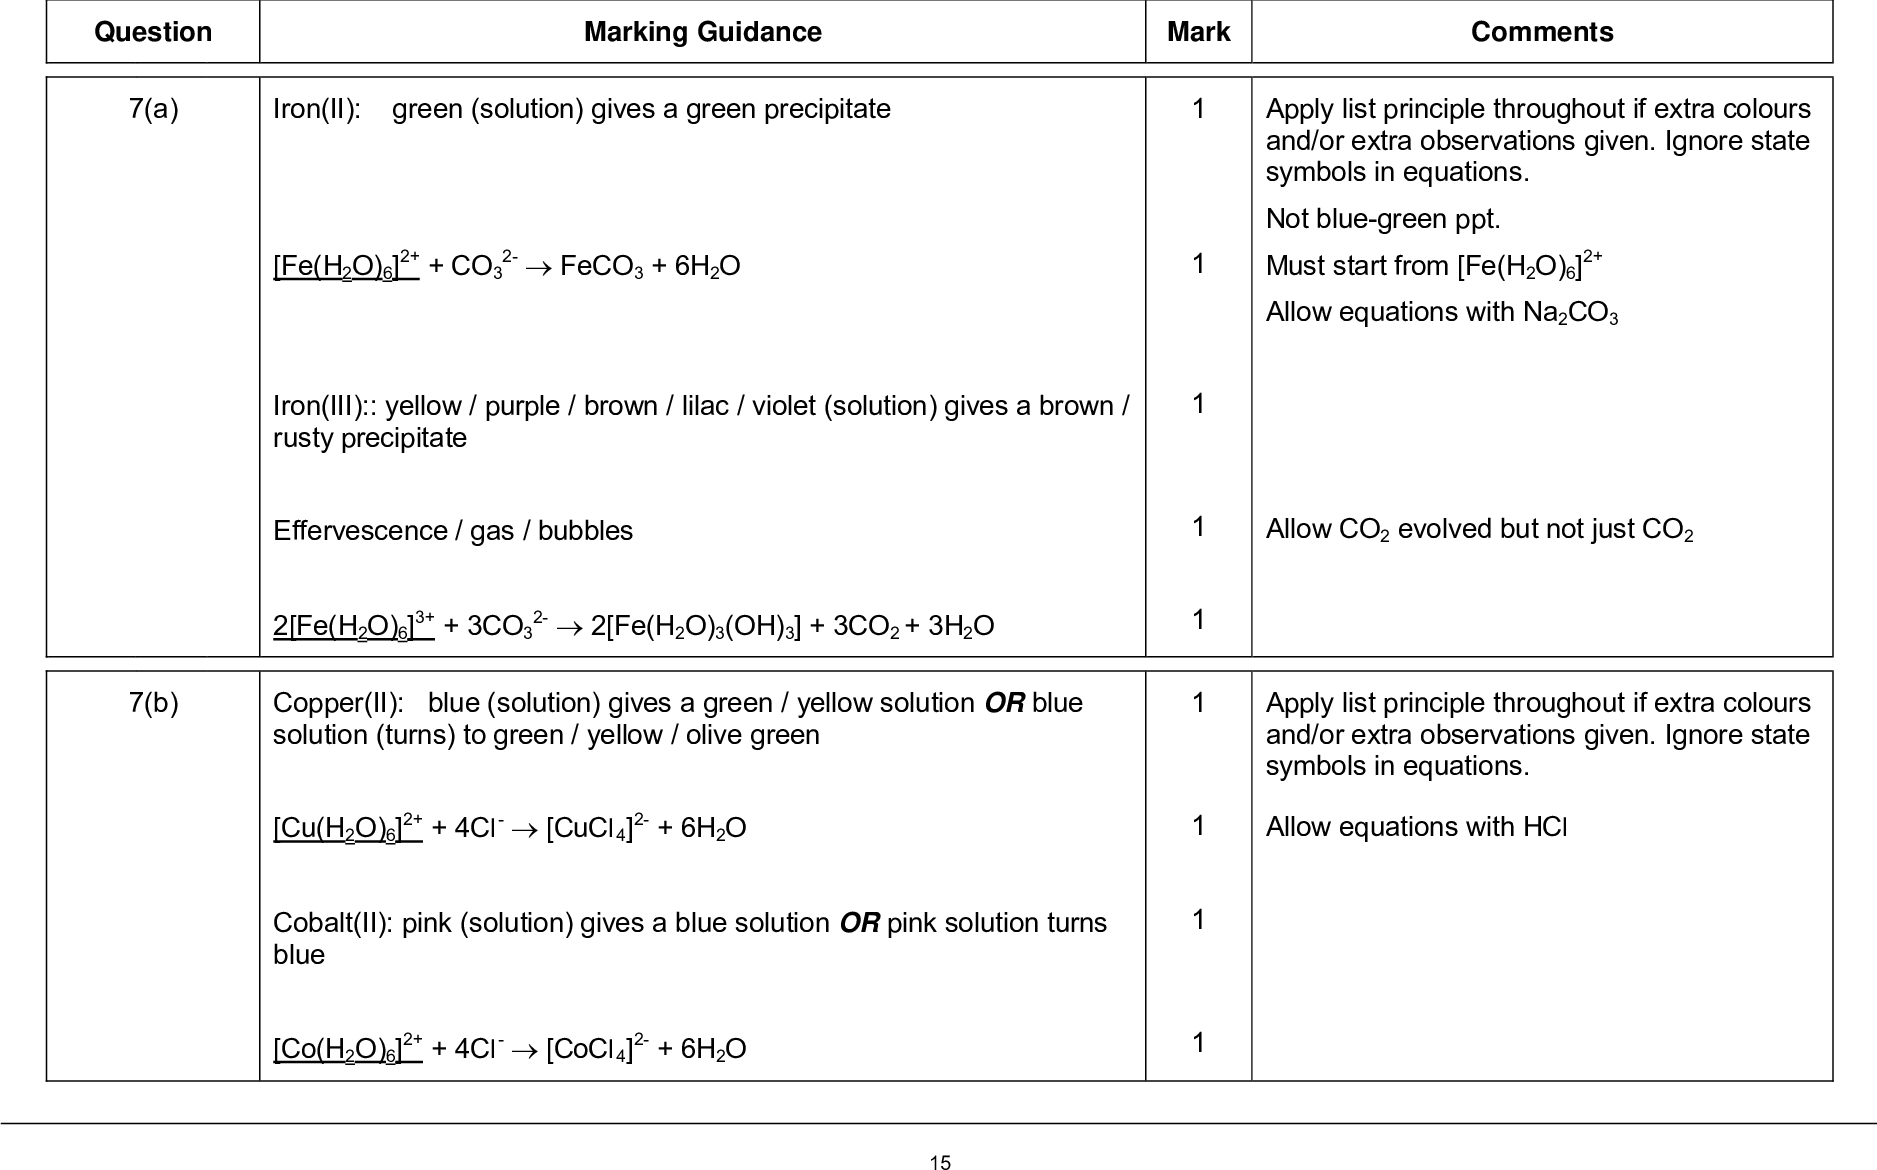 mark scheme general certificate of education a level chemistry unit energetics redox and inorganic chemistry june marking guidance mark comments question a apply list principle throughout if extra colours and or extra observations given ignore state symbols in equations not blue green ppt must start from fe h o allow equations with na co allow co evolved but not just co apply list principle throughout if extra colours and or extra observations given ignore state symbols in equations allow equations with hcl iron ii green solution gives a green precipitate feco h o fe h o co iron iii yellow purple brown lilac violet solution gives a brown rusty precipitate effervescence gas bubbles fe h o co fe h o oh co h o b copper ii blue solution gives a green yellow solution or blue solution turns to green yellow olive green cu h o cl cucl h o cobalt ii pink solution gives a blue solution or pink solution turns blue co h o cl cocl h o mark scheme general certificate of education a level chemistry unit energetics redox and inorganic chemistry june c iron ii green solution gives a green precipitate fe h o oh fe h o oh h o chromium iii green ruby purple violet red violet solution gives a green solution or green ruby purple violet red violet solution turns green cr h o oh cr oh h o d al colourless solution gives a white ppt al h o nh al h o oh nh ag colourless solution remains a colourless solution no visible change ag h o nh ag nh h o apply list principle throughout if extra colours and or extra observations given ignore state symbols in equations allow equations with naoh ignore green ppt allow also with or oh balanced with or waters also allow two correct equations showing cr h o oh as intermediate apply list principle throughout if extra colours and or extra observations given ignore state symbols in equations oh also allow oh h o if nh h o nh ignore brown ppt allow equations involving ag o or ag oh